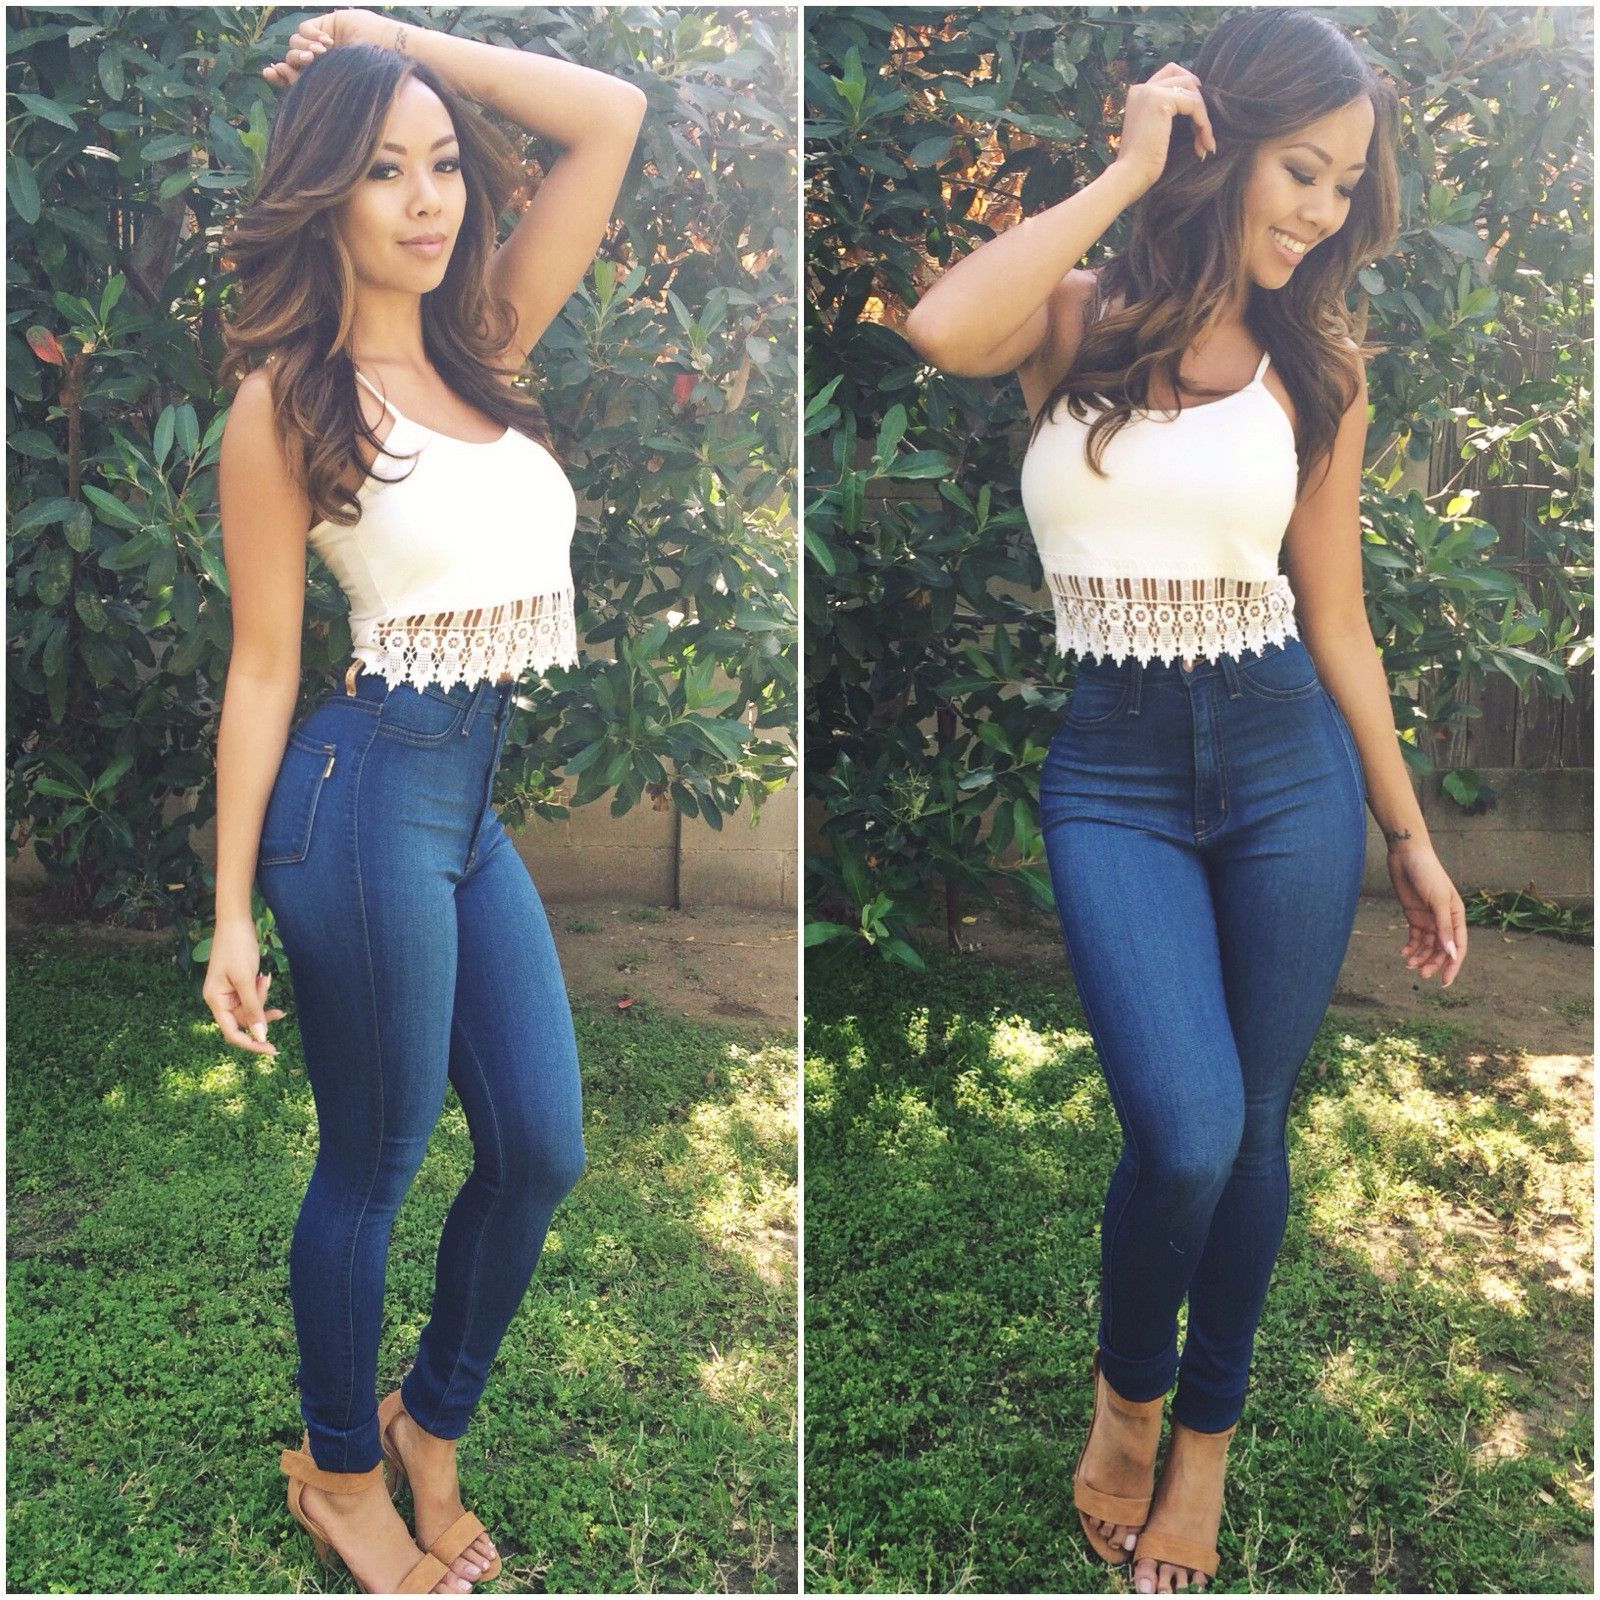 Buy Hourglass full figure tumblr picture trends